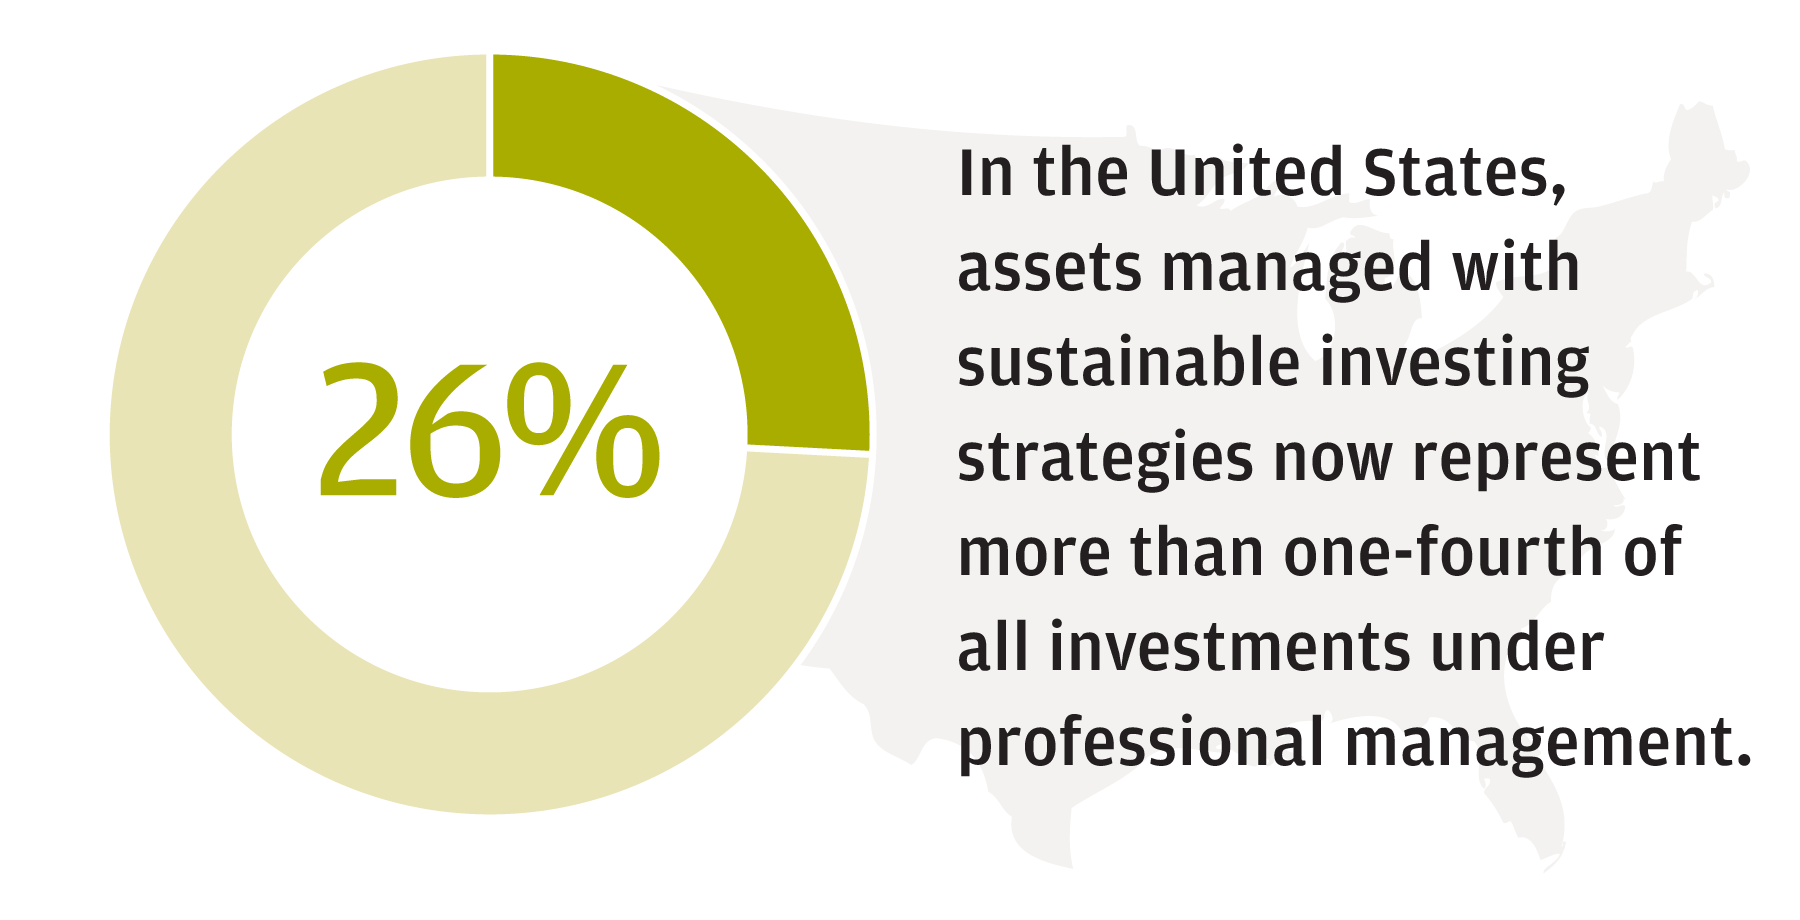 Pie chart that states that 26% of assets managed in the US are within the Sustainable Investing space.